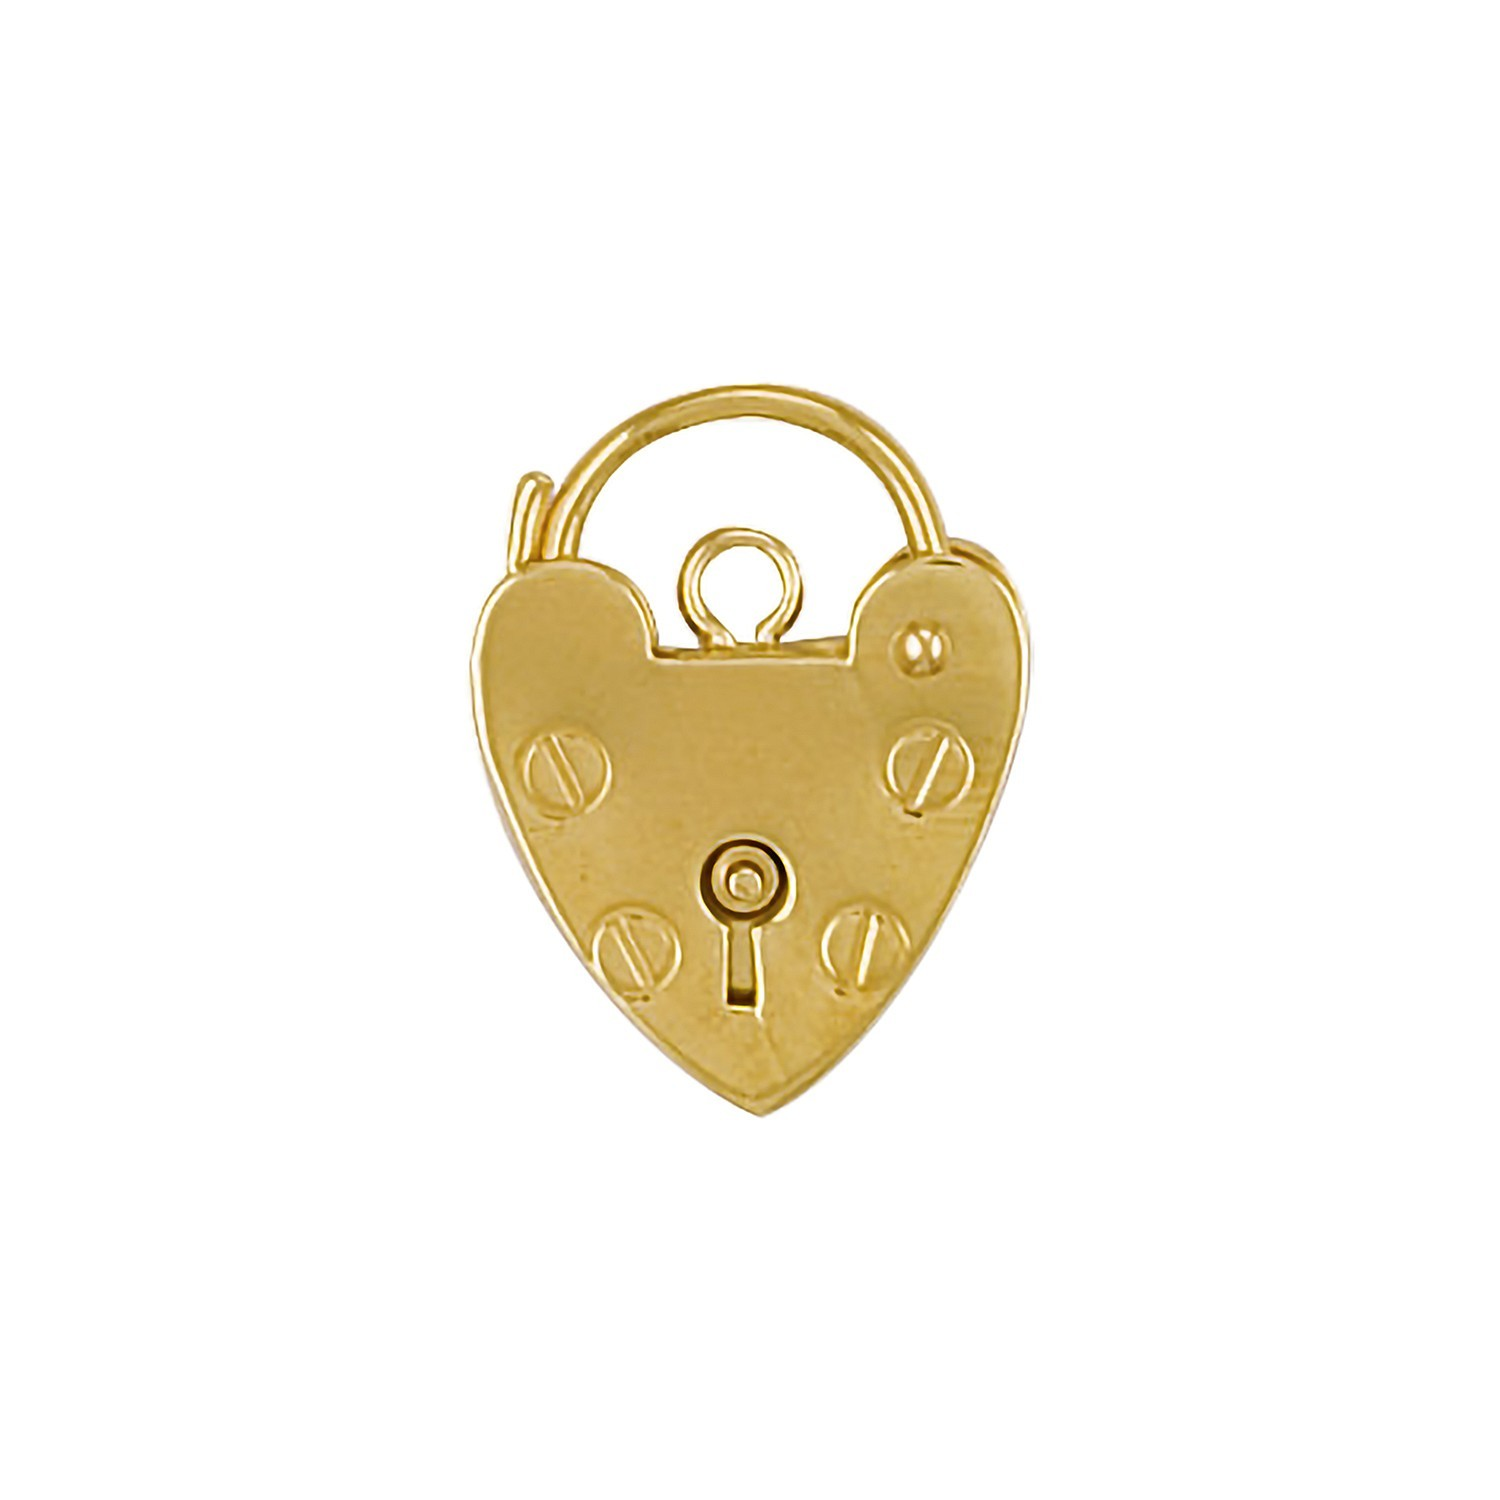 9ct YG 13.5mm Padlock